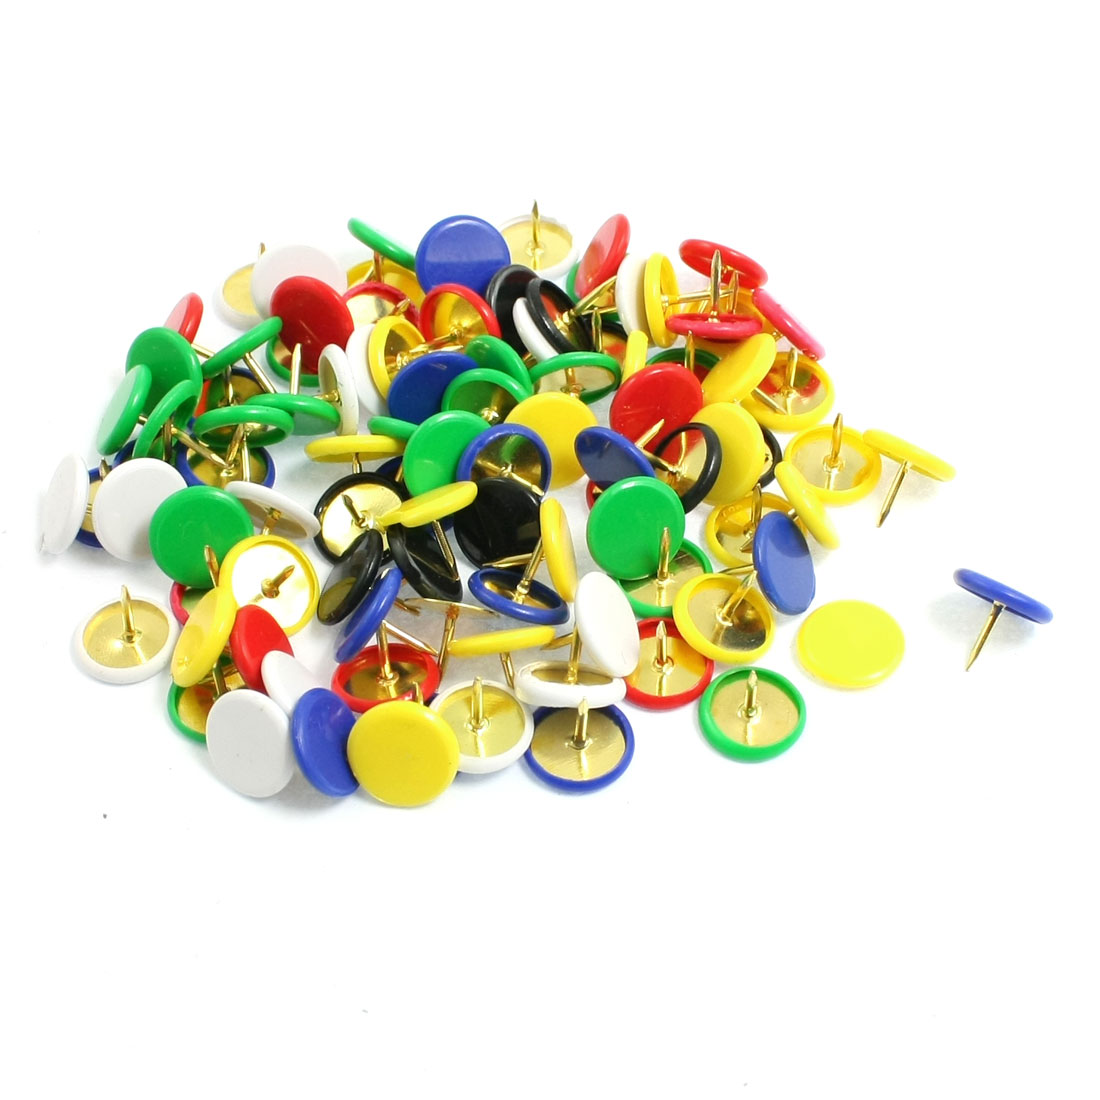 Unique Bargains 95 Pcs Home/Office Board Map Push Pins Thumbtacks w Steel Point